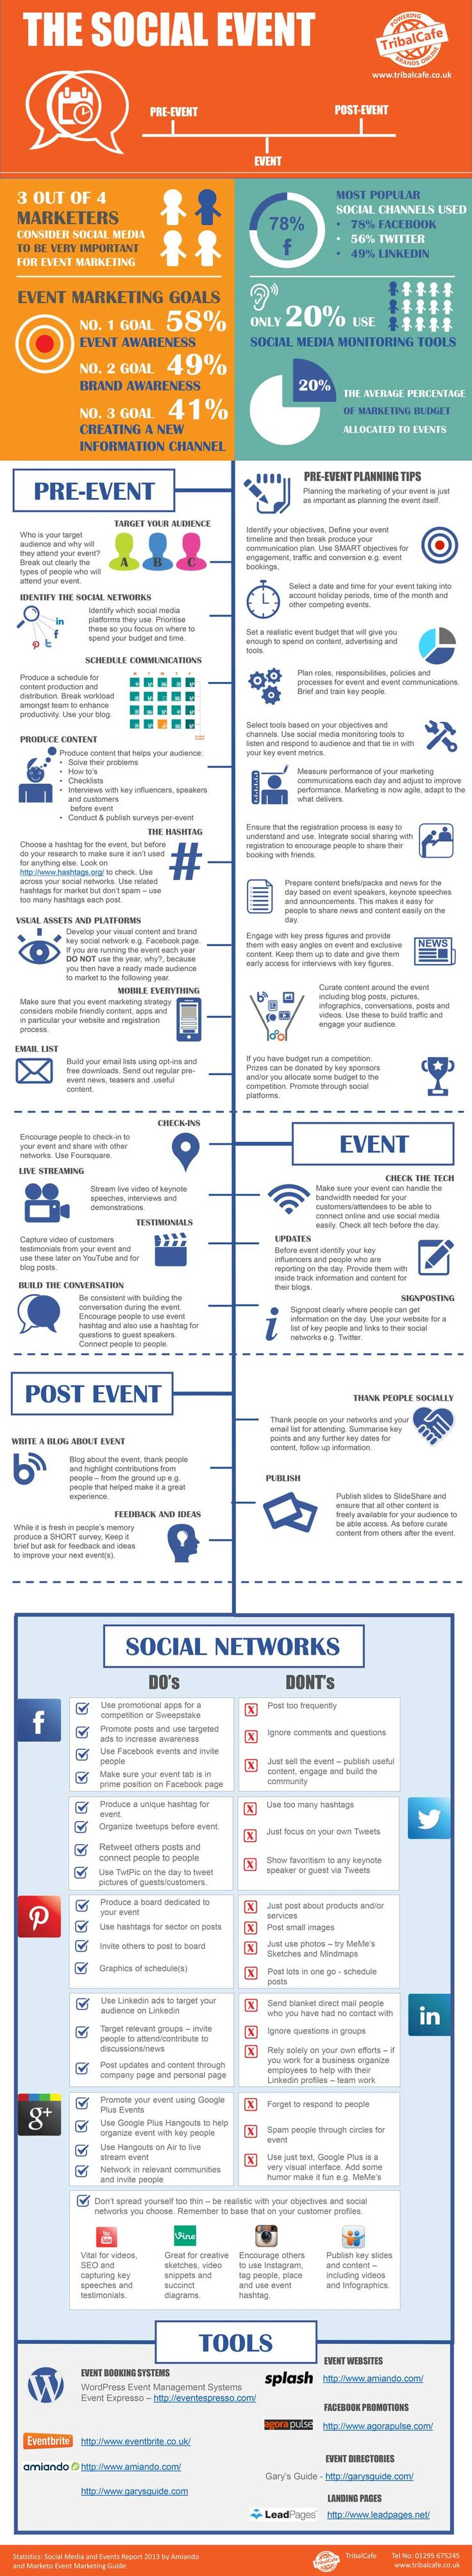 The Social Event Management #infographic #infografía